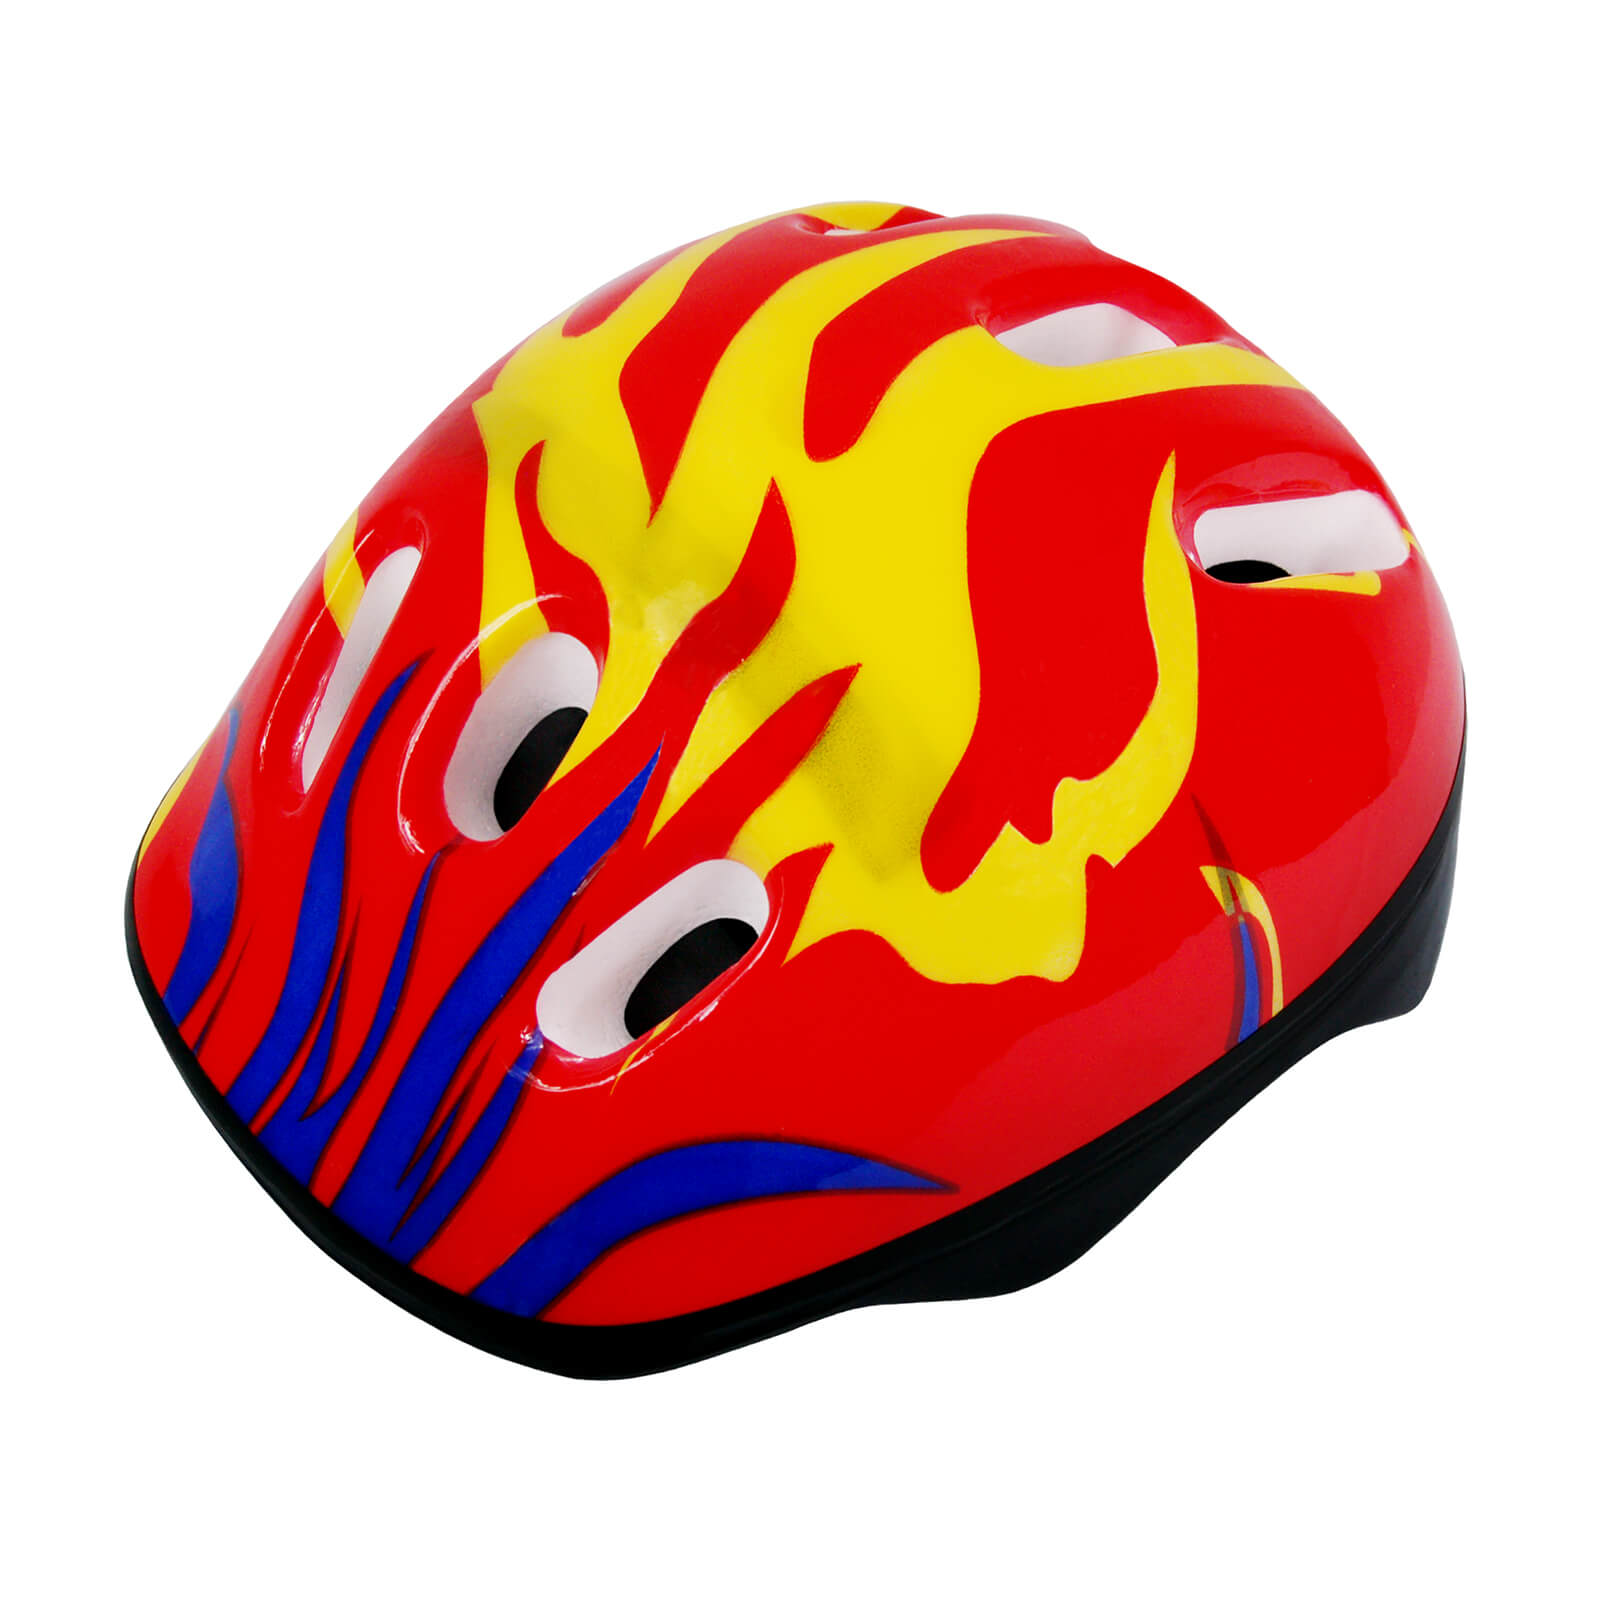 Adjustable Fitting Size M Kids Bike Protective Helmet, Star Pattern by Scale Sports